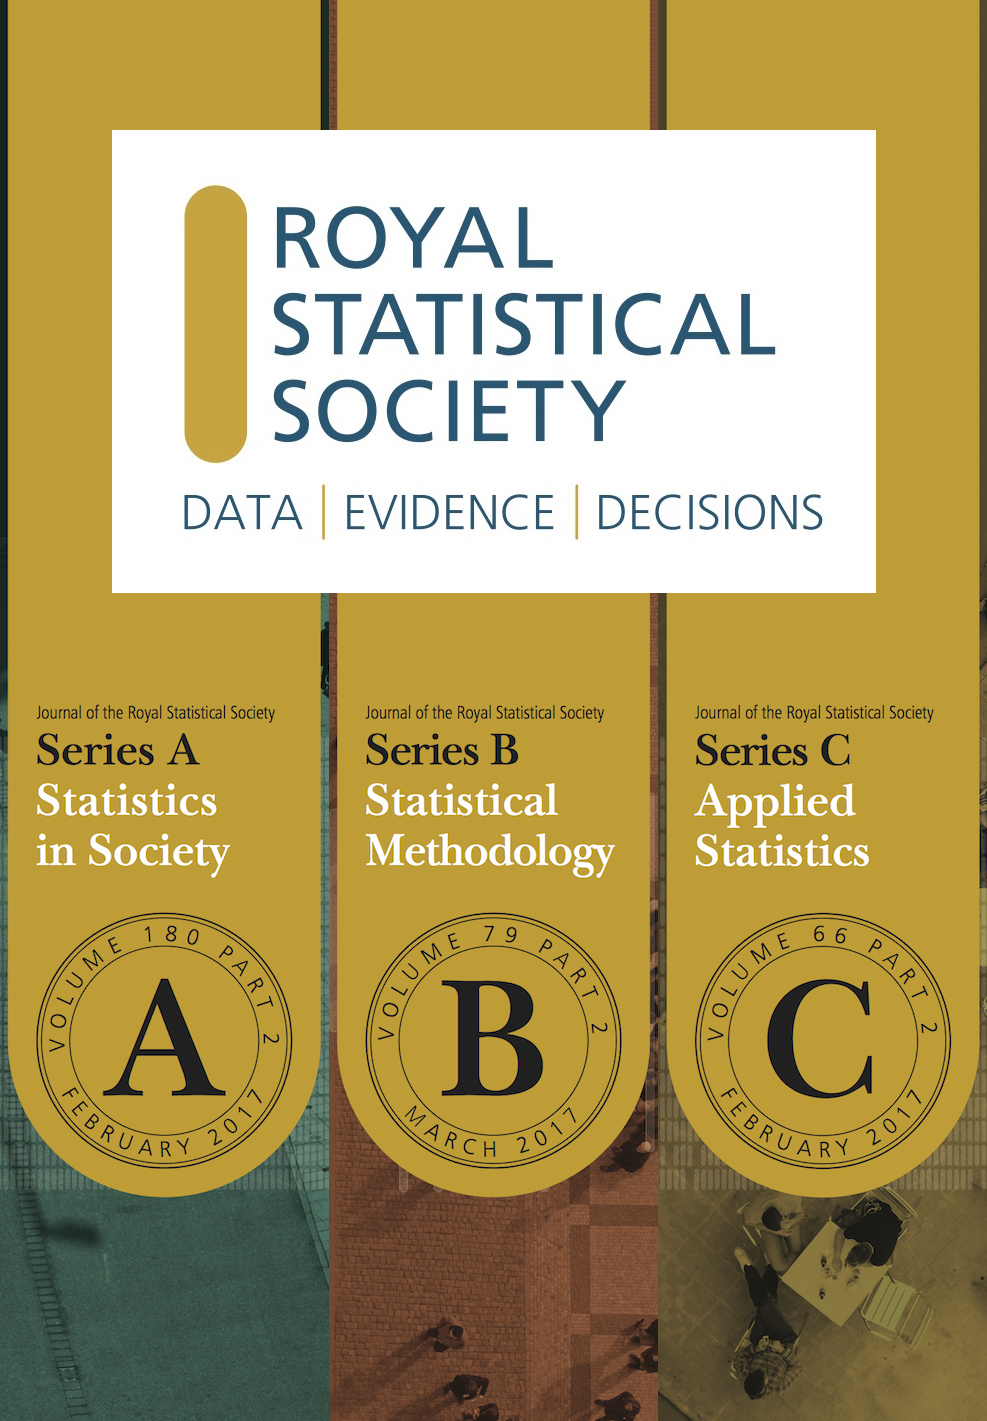 template for submissions to journal of the royal statistical society